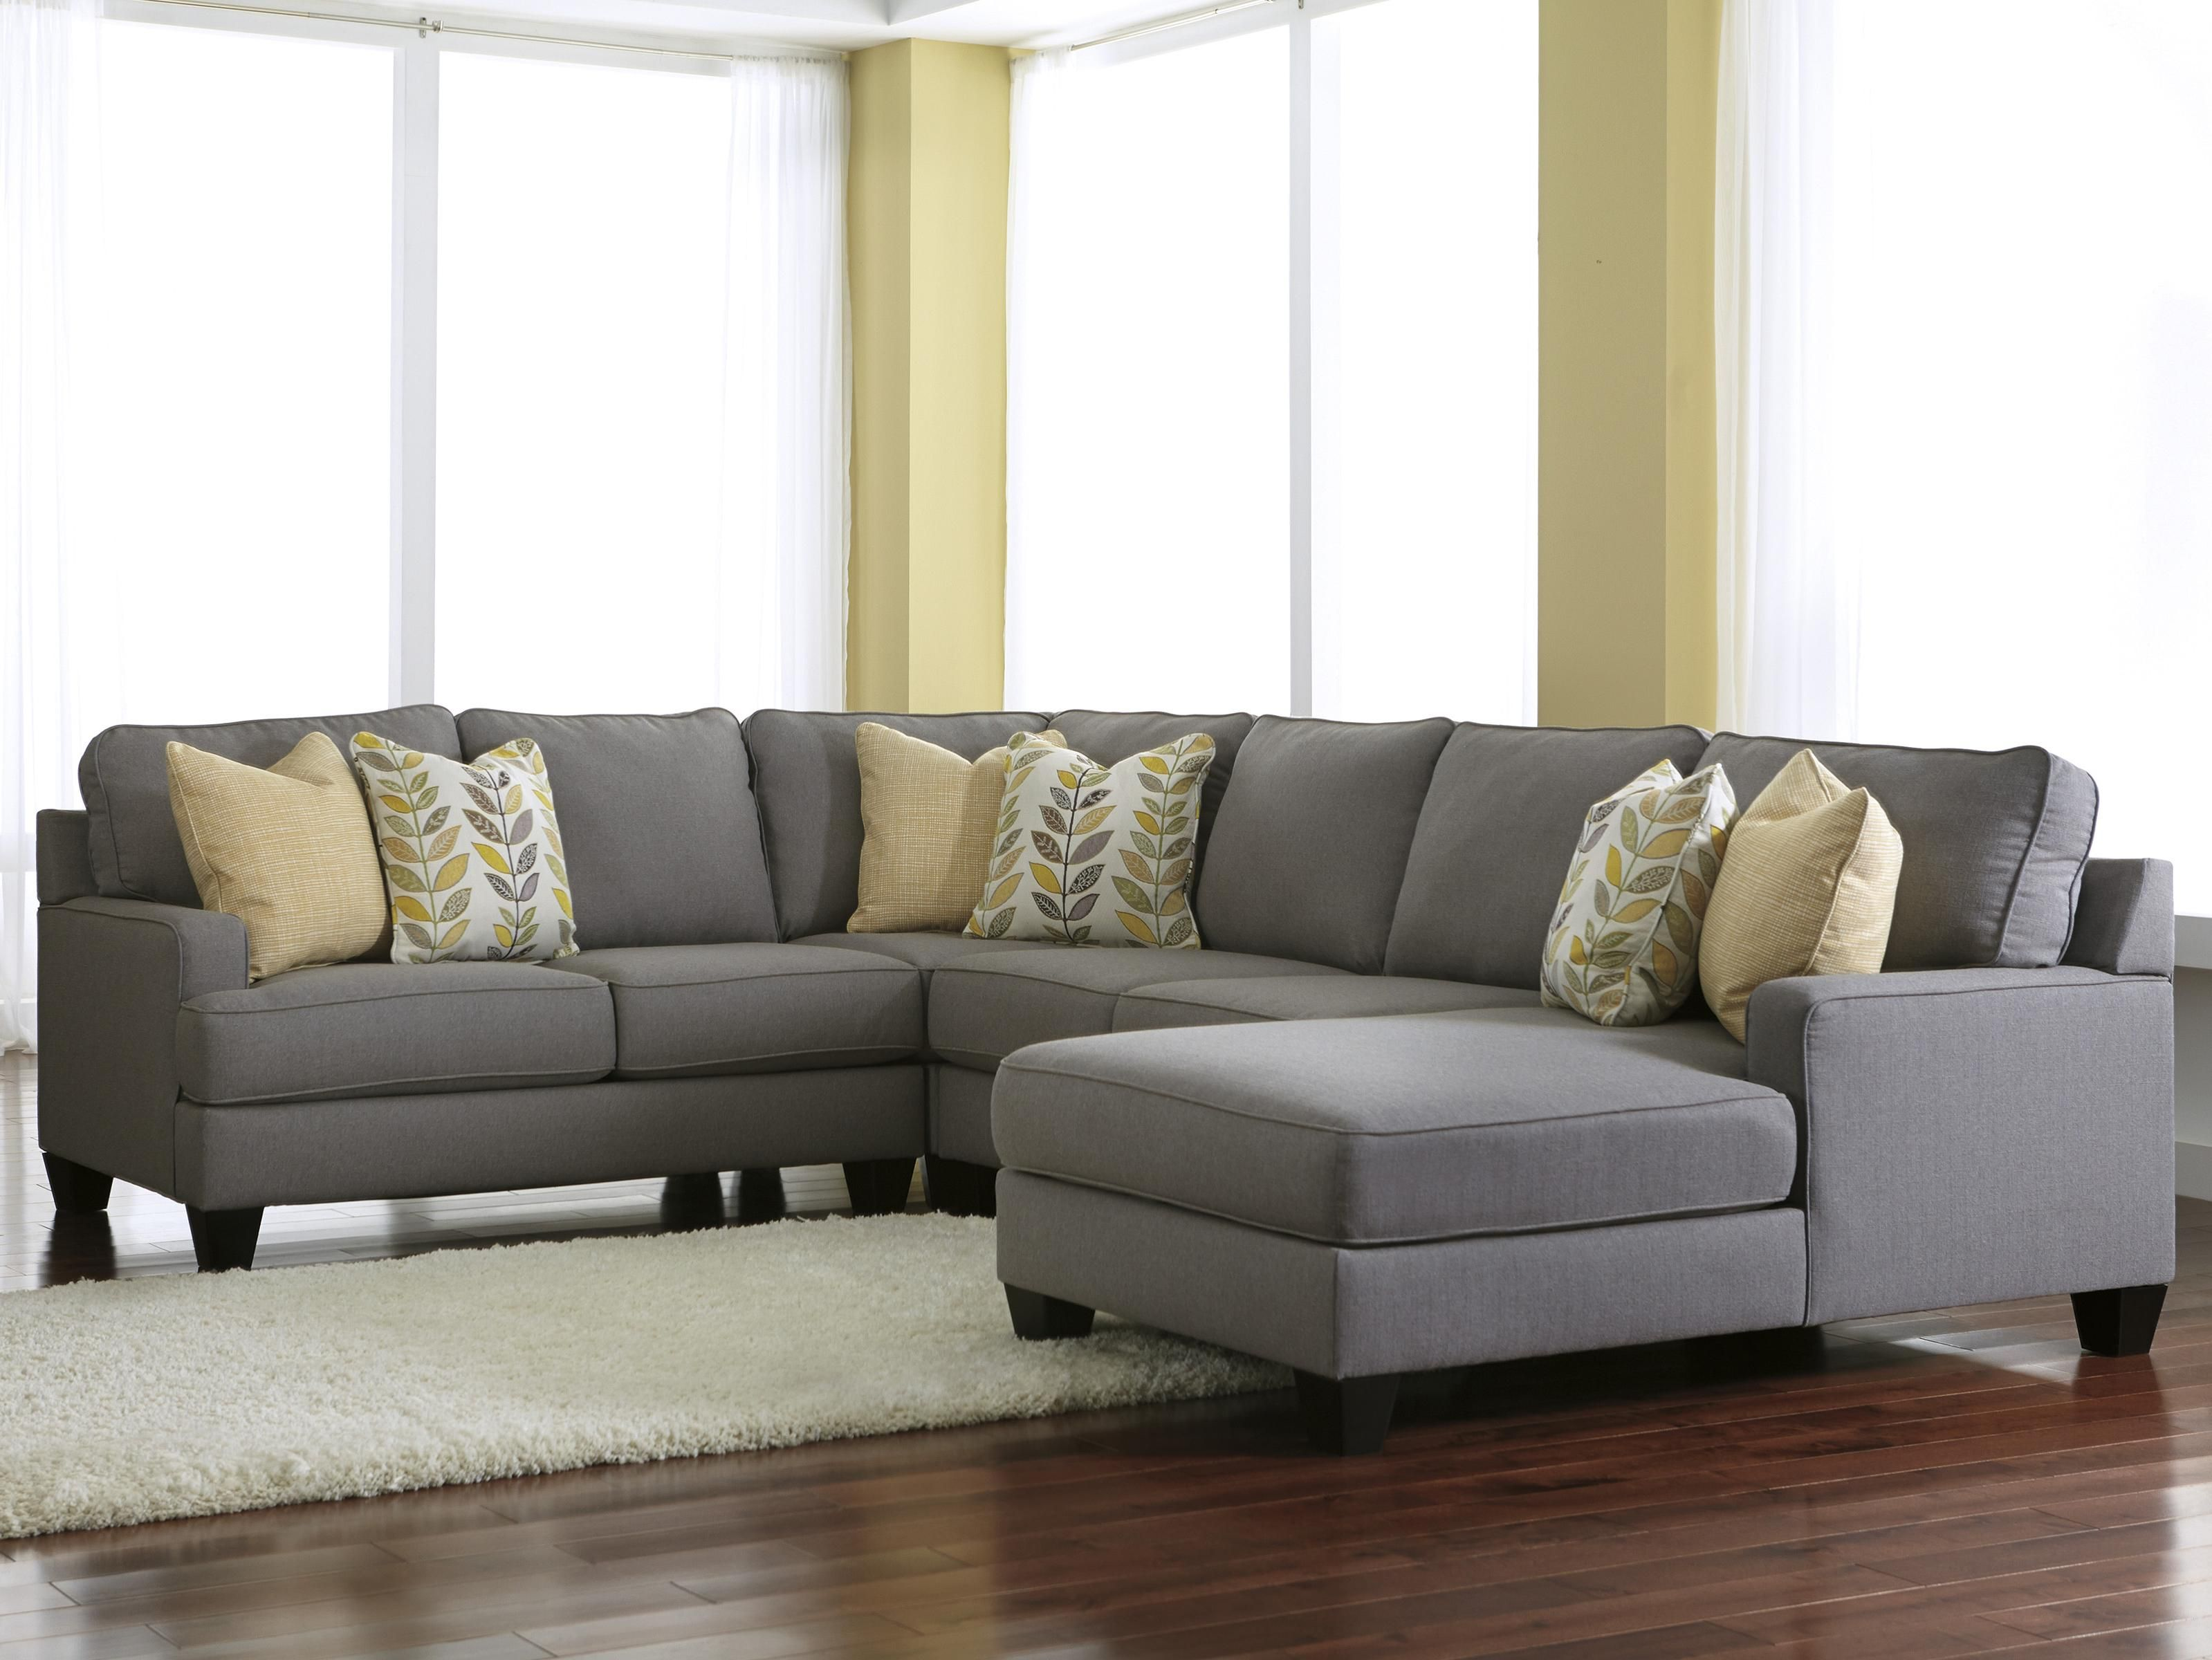 Chamberly - Alloy 4-Piece Sectional Sofa with Right Chaise by ...